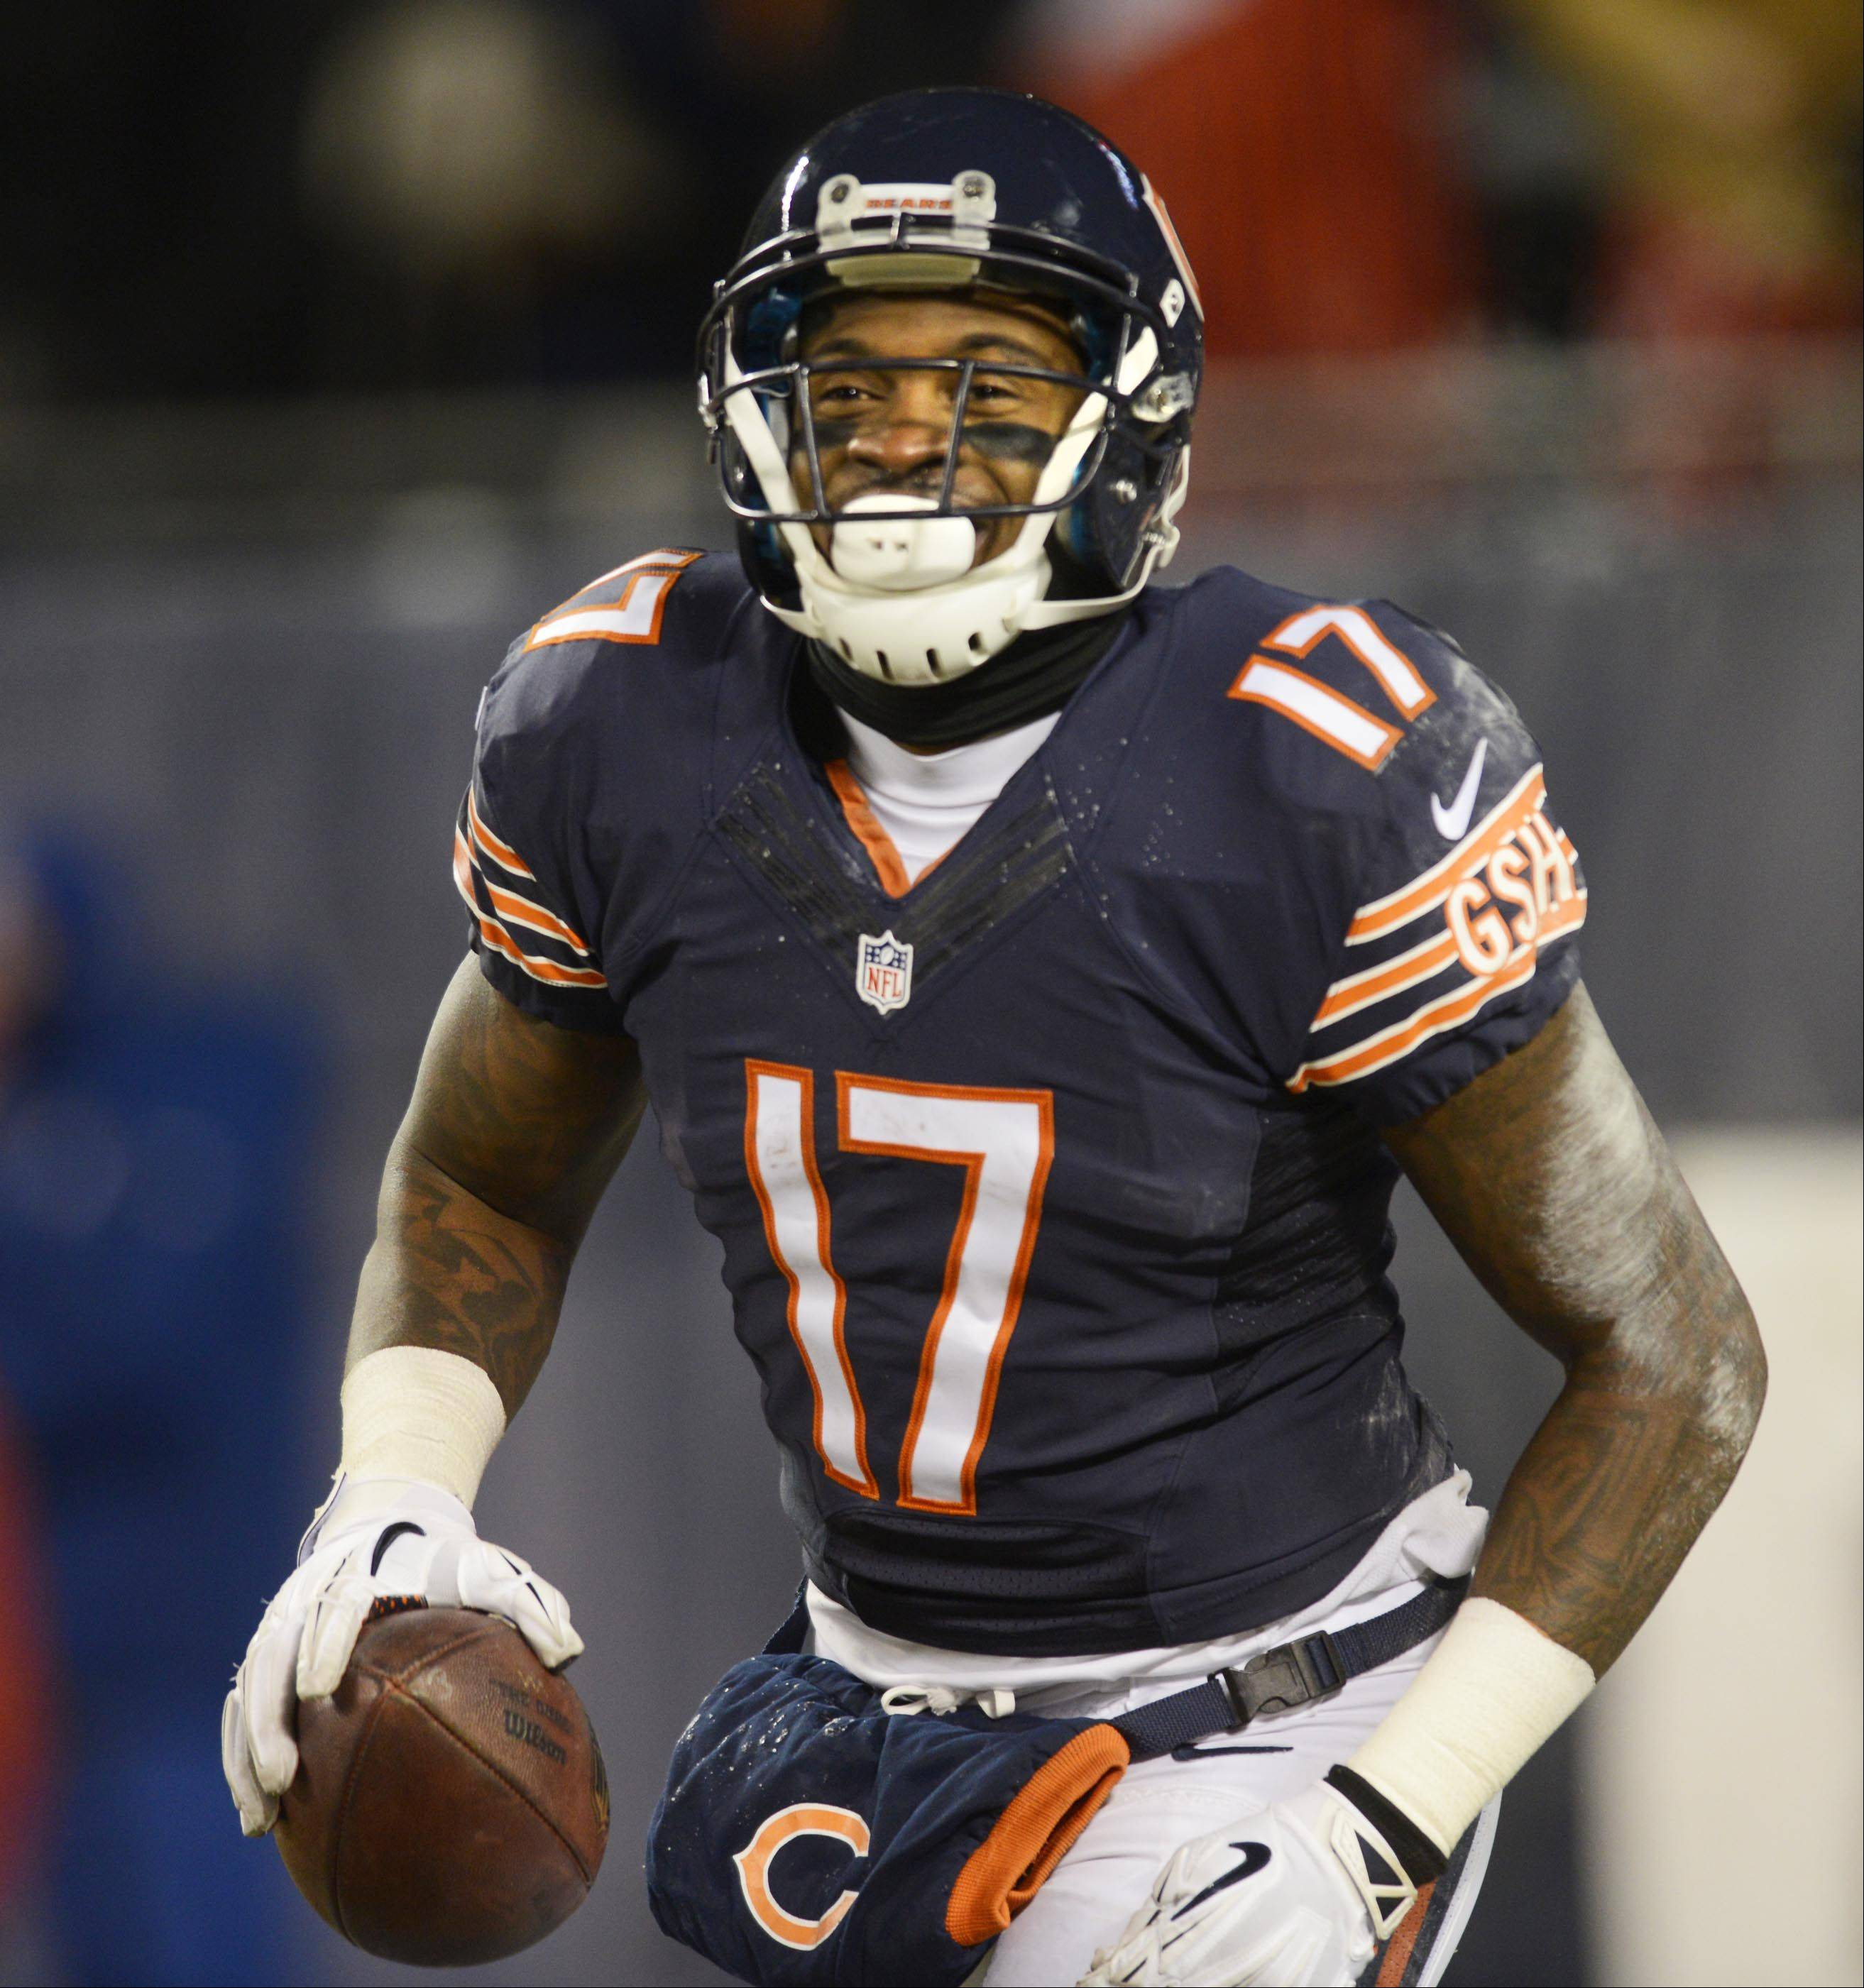 Chicago Bears wide receiver Alshon Jeffery laughs after a first-half touchdown.